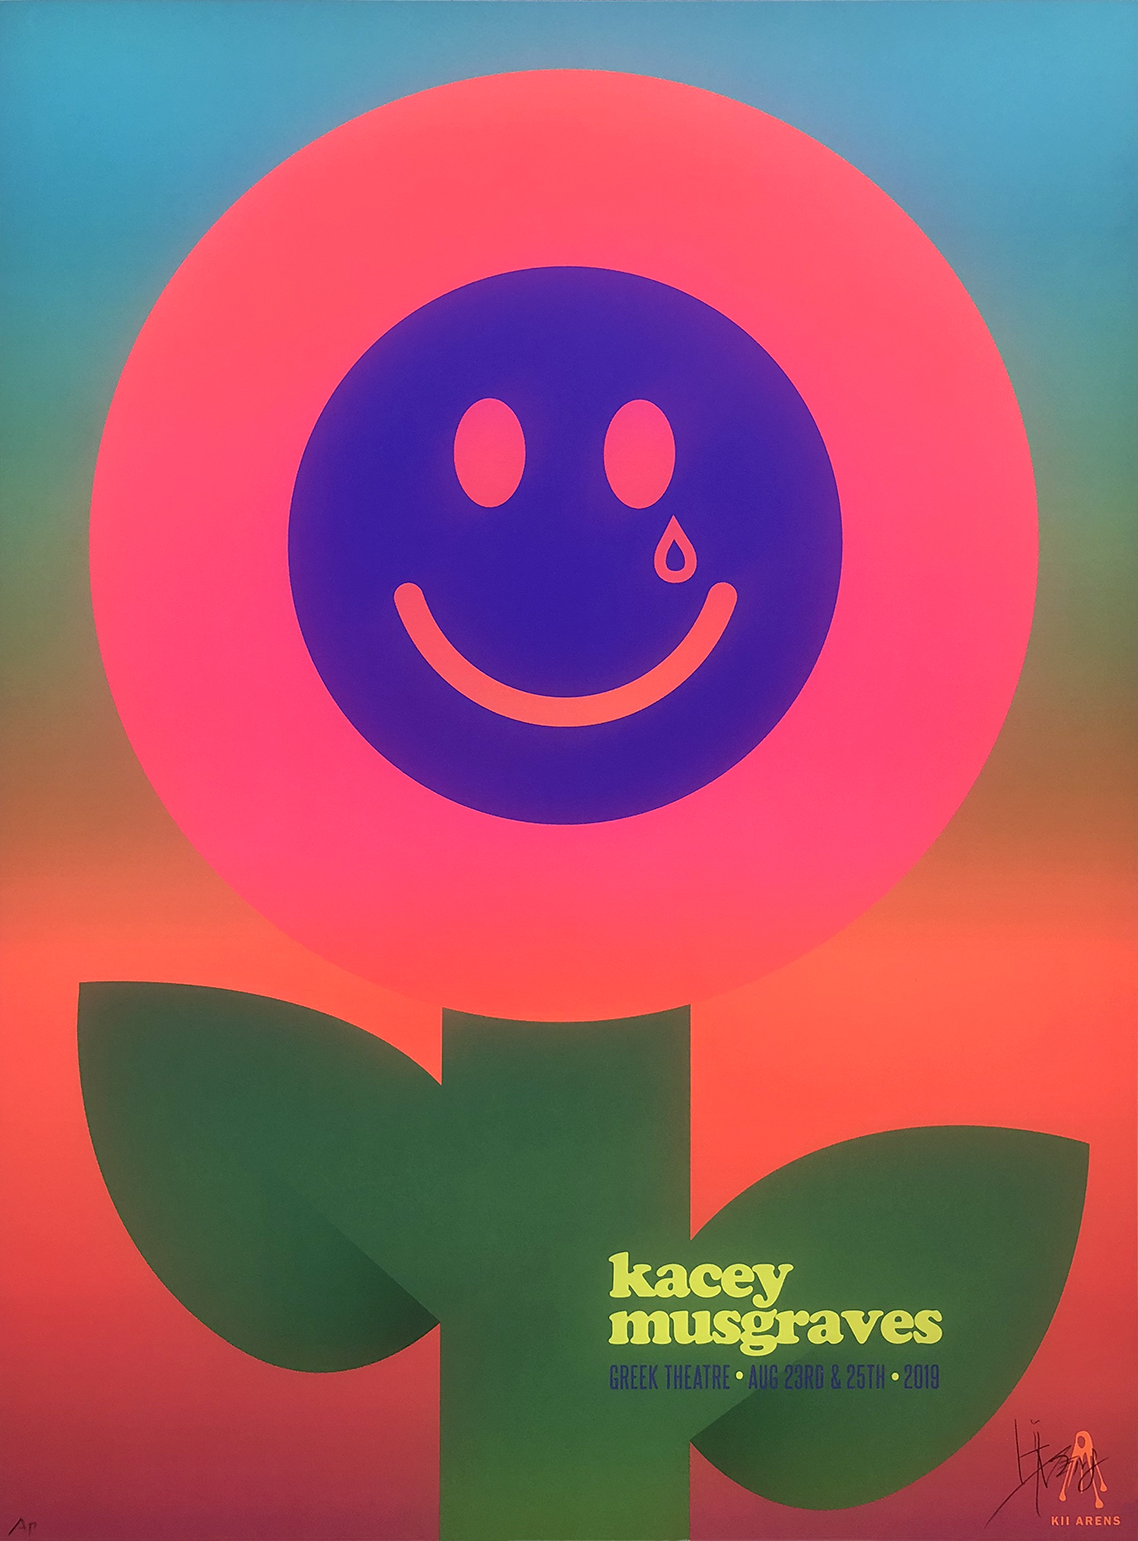 KACEY MUSGRAVES - GREEK THEATRE 2019